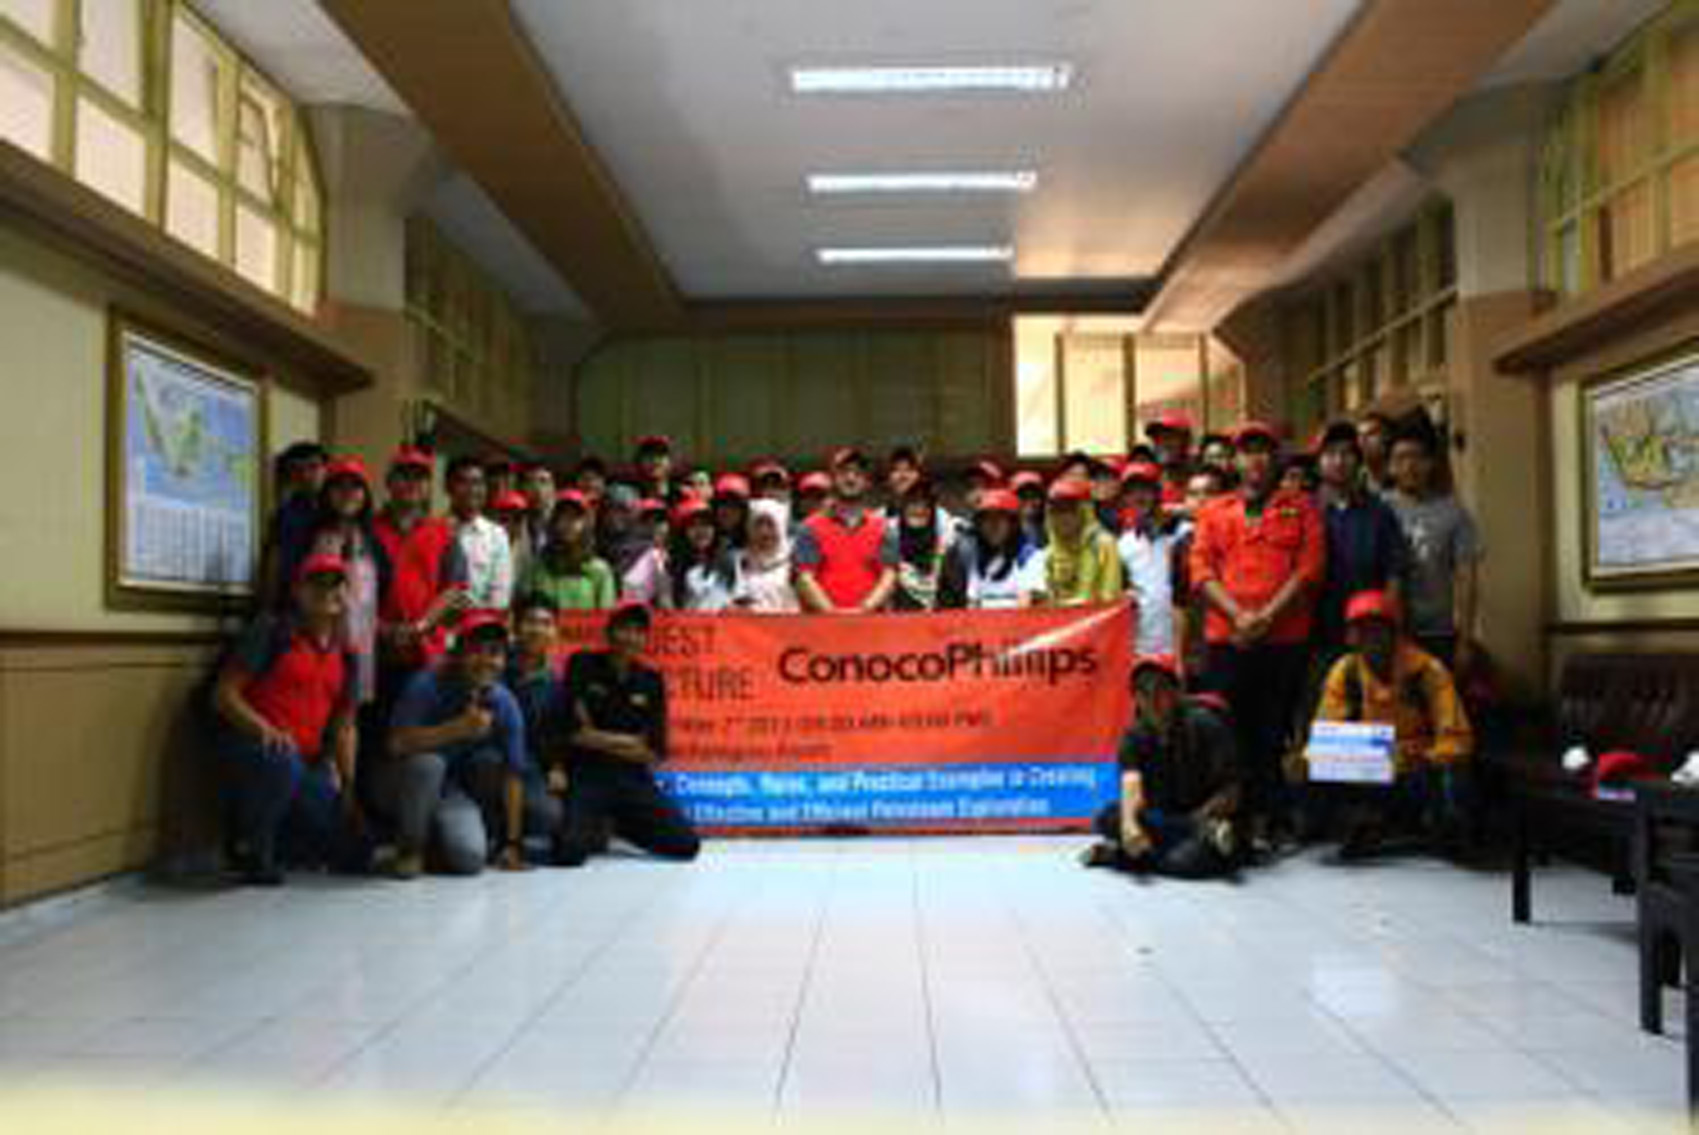 Photo Session of Lecture with ConoccoPhillips